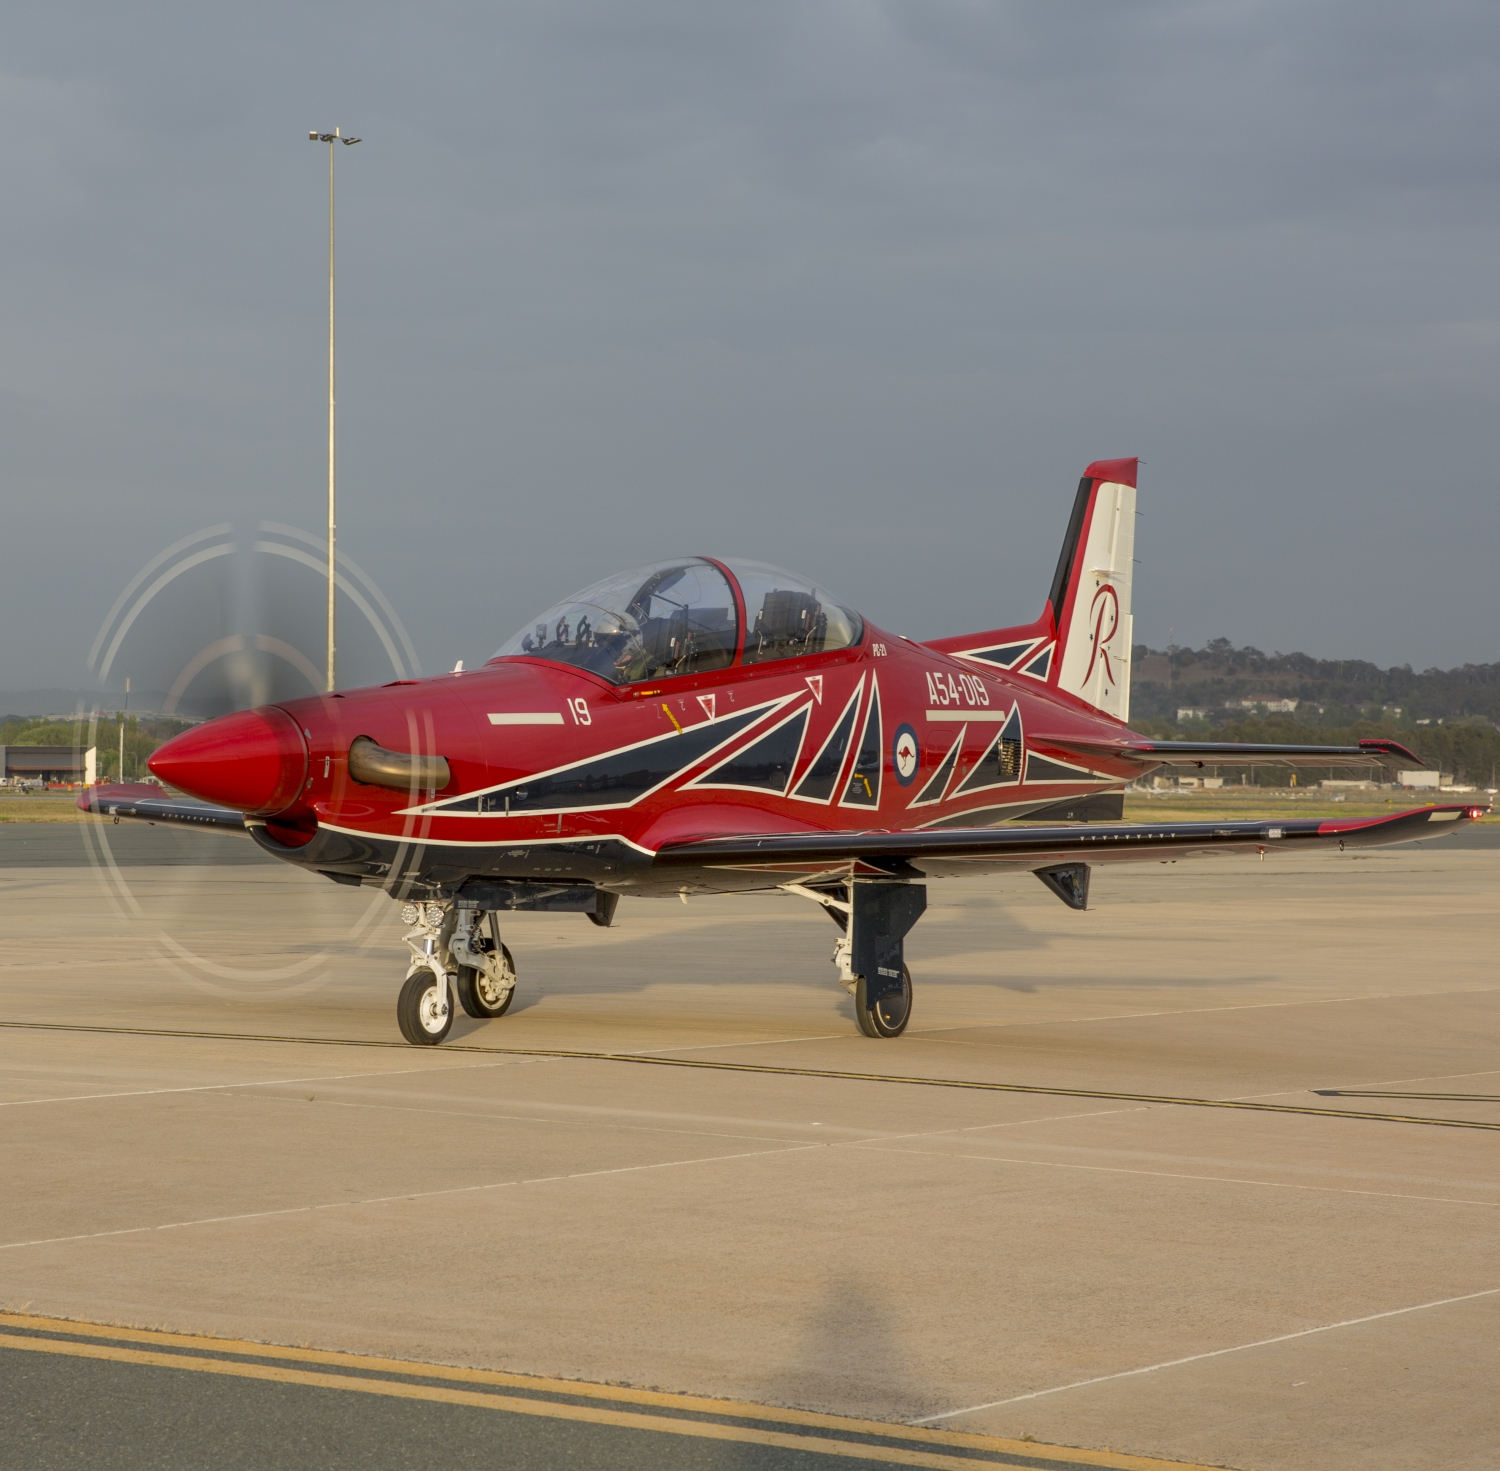 A Royal Australian Air Force PC-21 aircraft on tarmac at Fairbairn preparing to take off. (Defence)